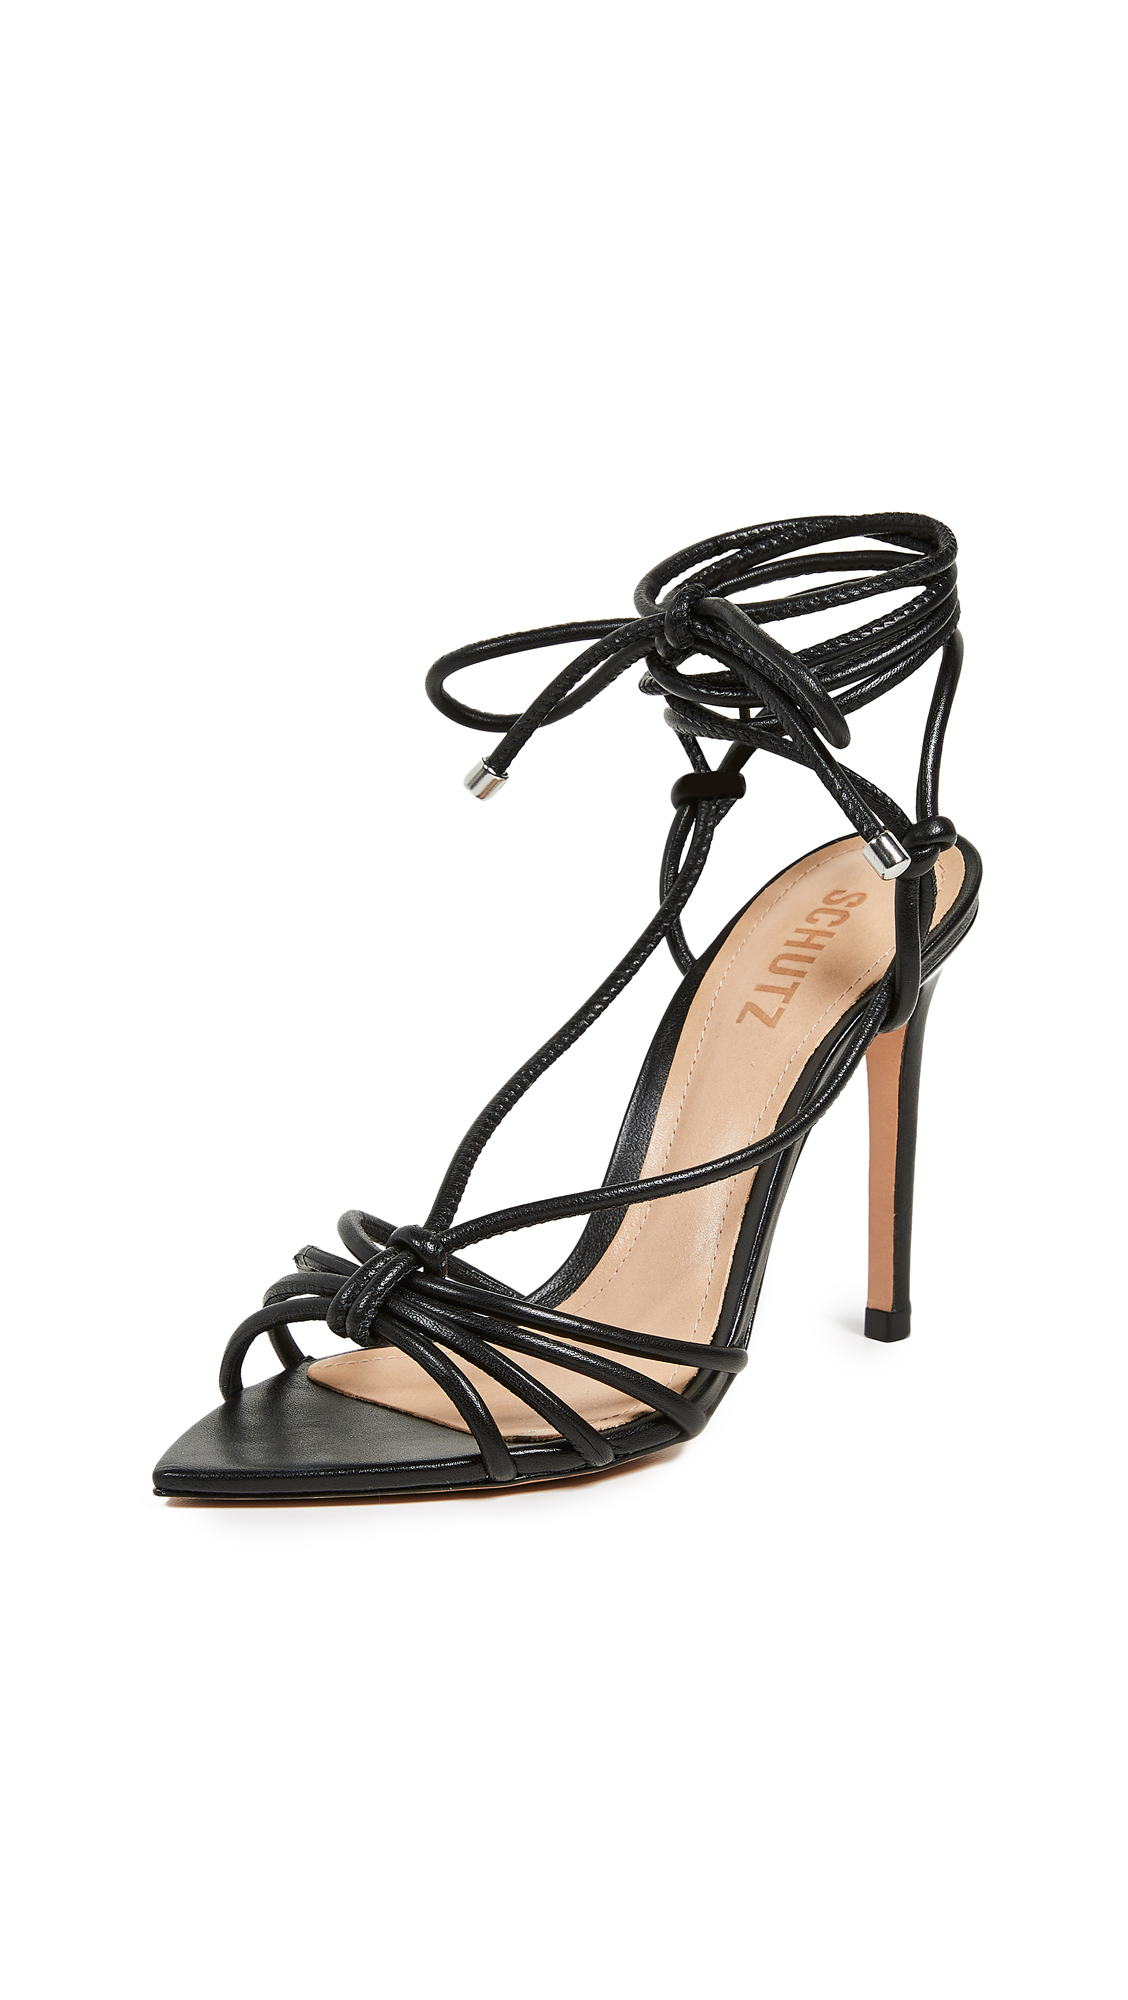 Schutz Meela Strappy Sandals - Black